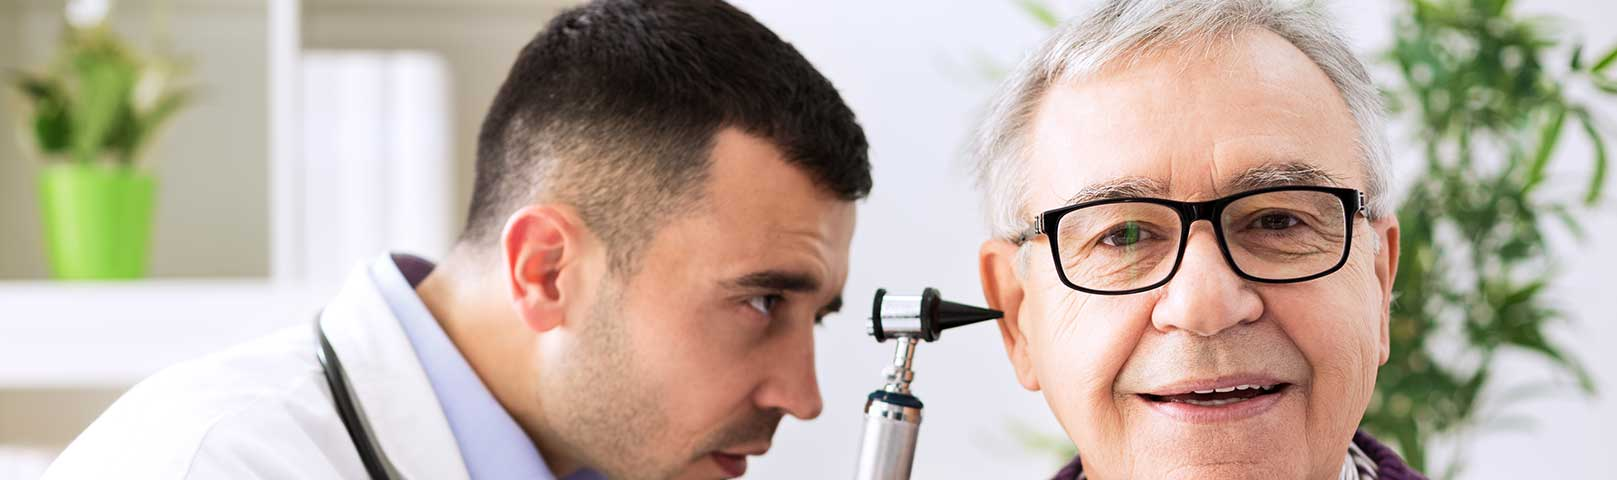 Audiologist looking at a patient with Hearing Loss